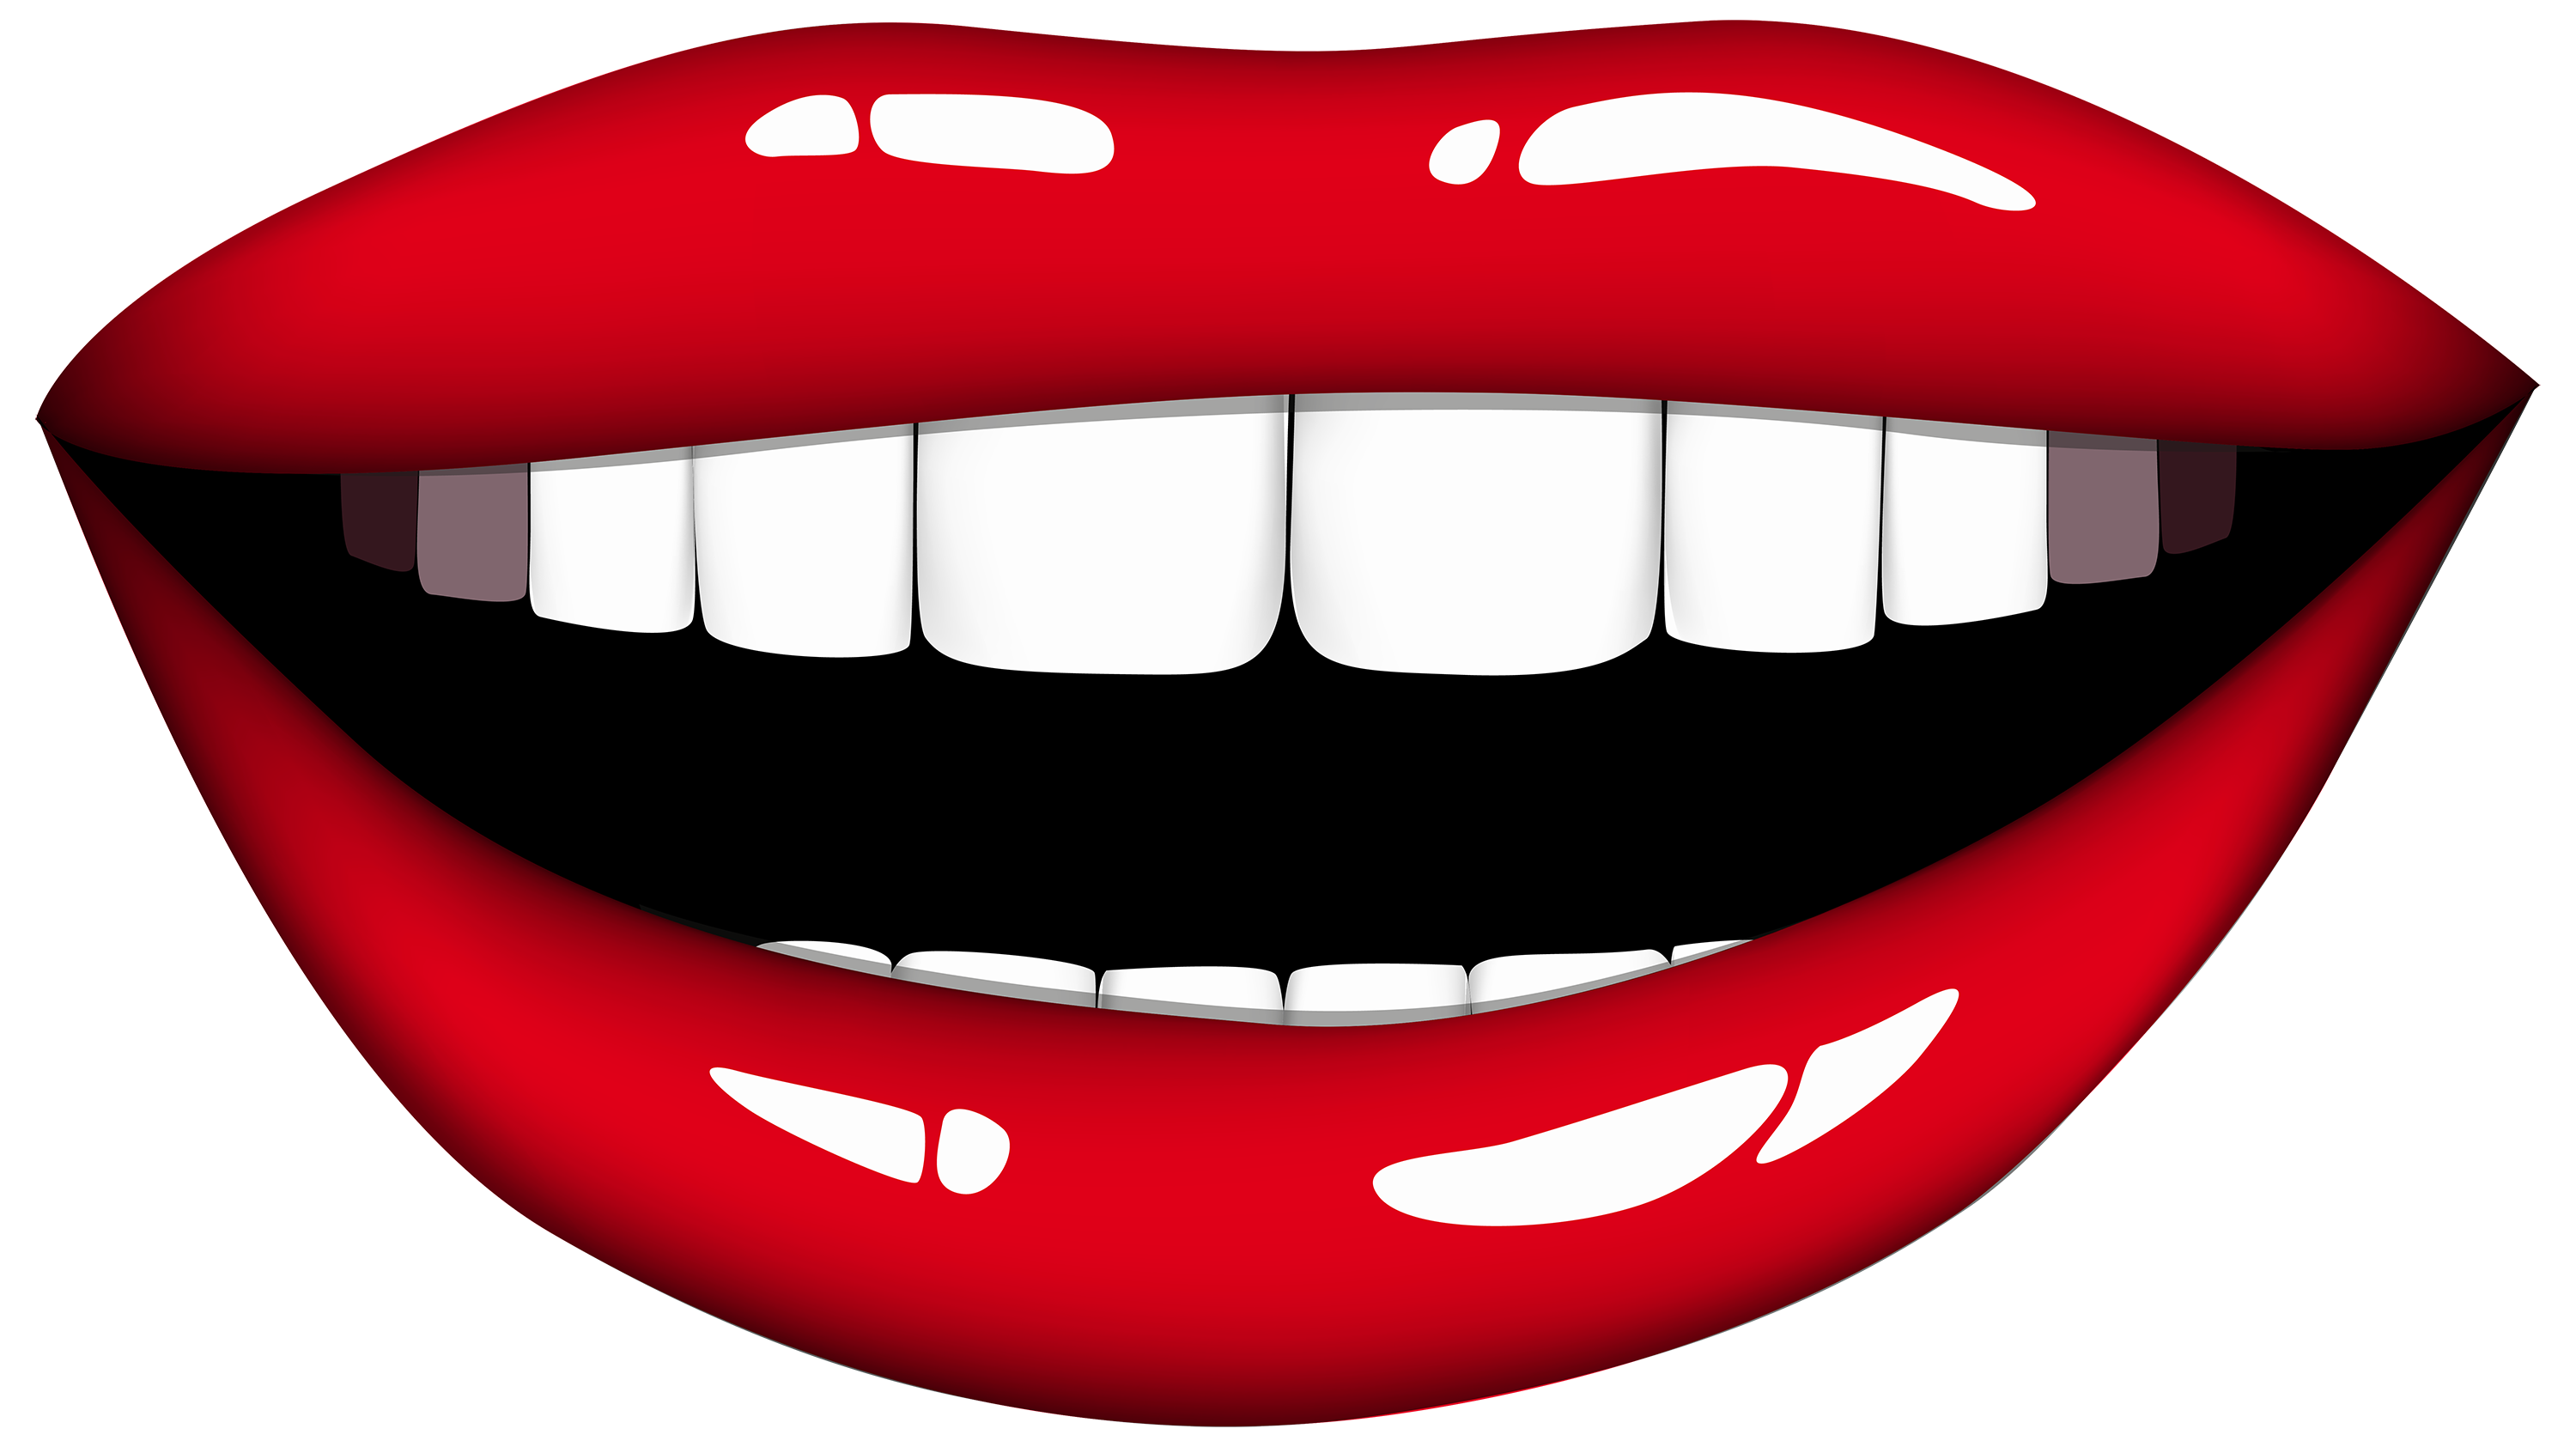 Smiling mouth png best. Clipart smile beautiful smile